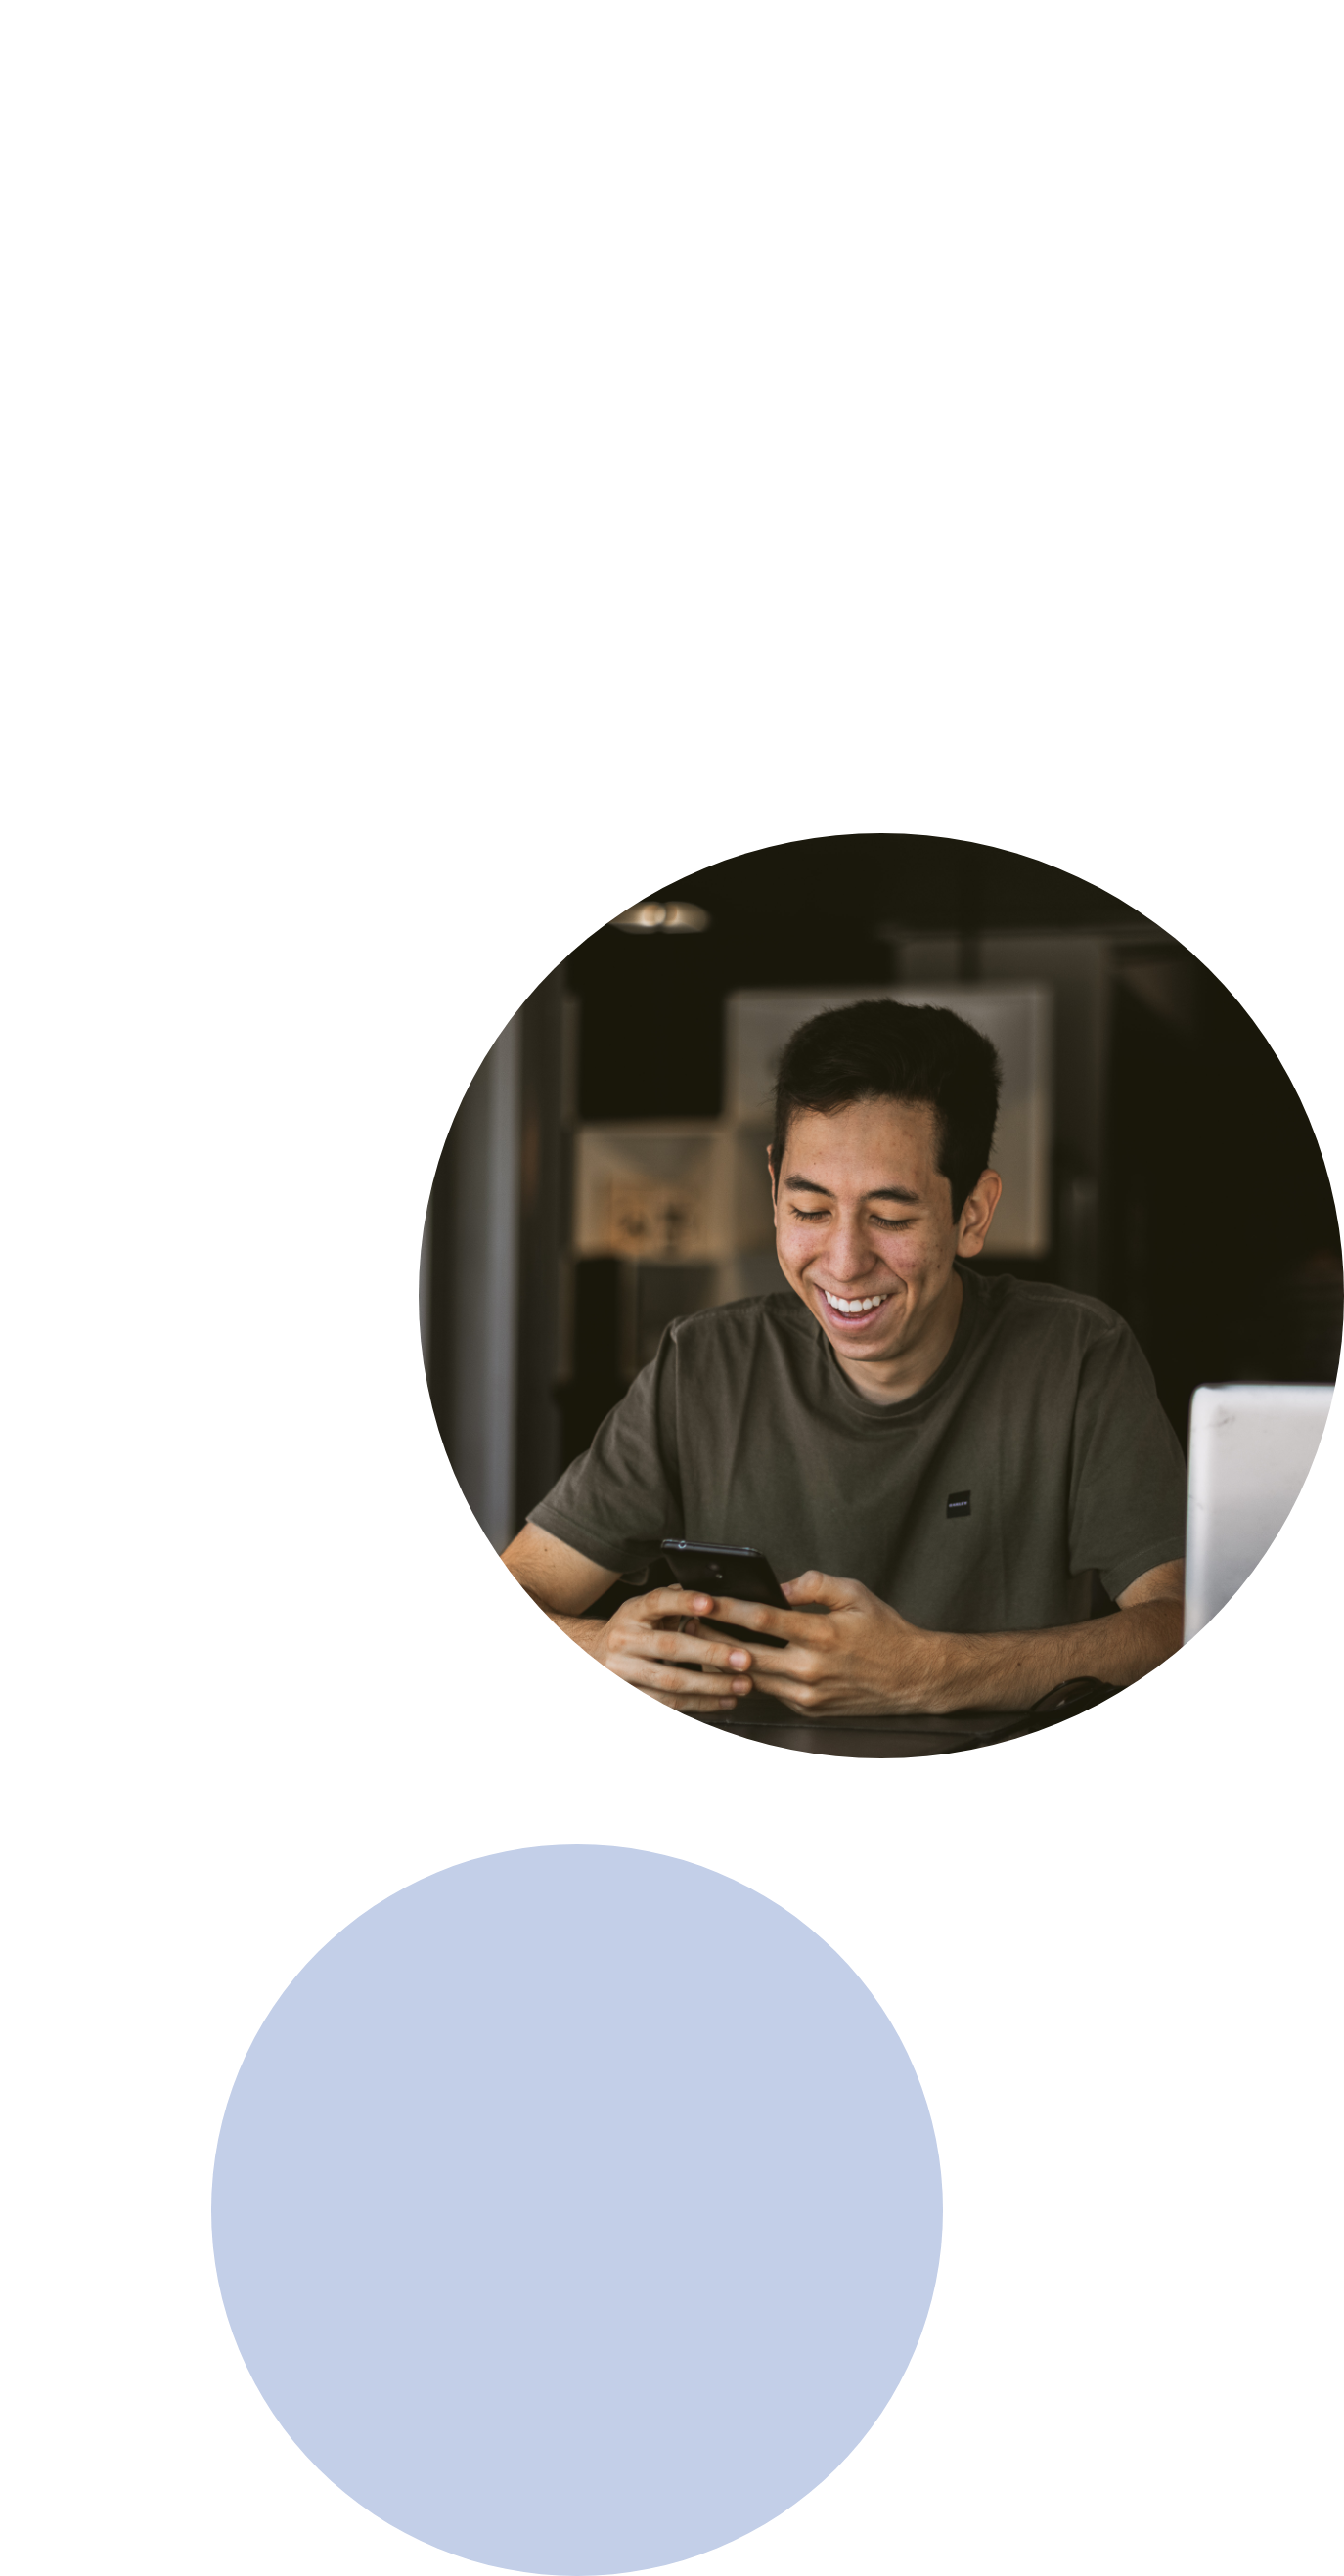 image of a man smiling while texting